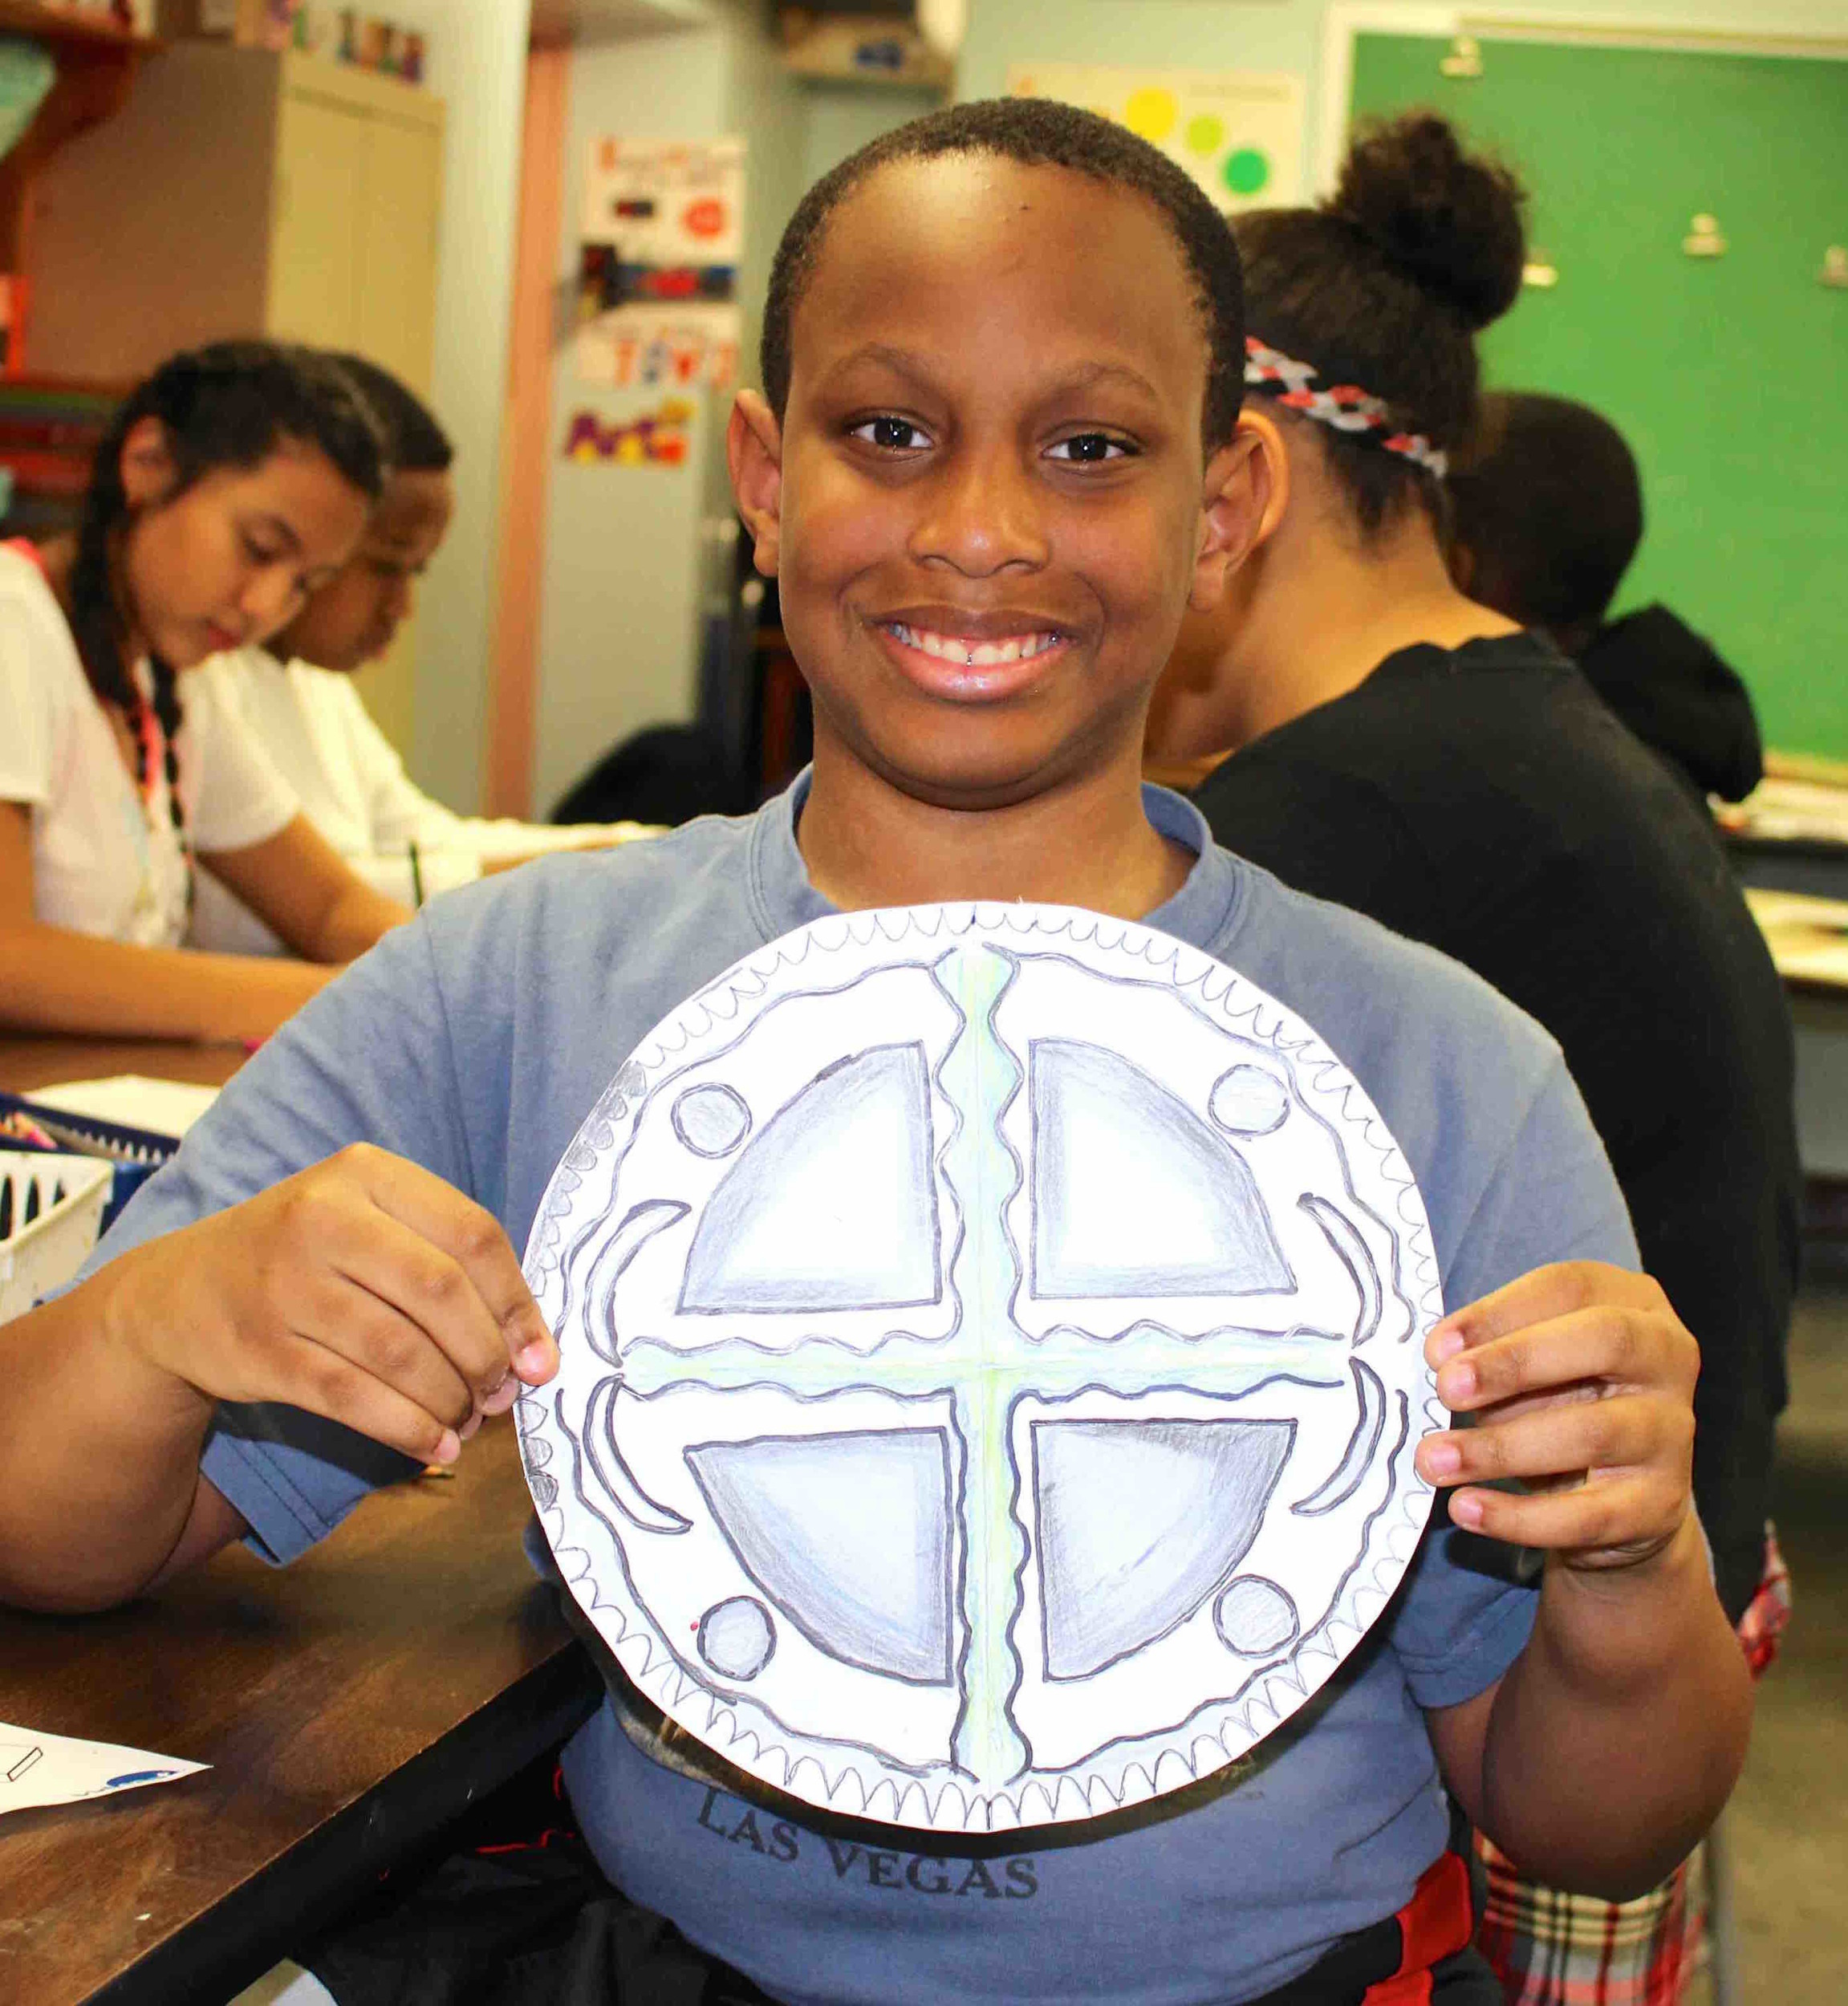 Lucanthony Angrand showed off the symmetry of his mandela during the class lesson.